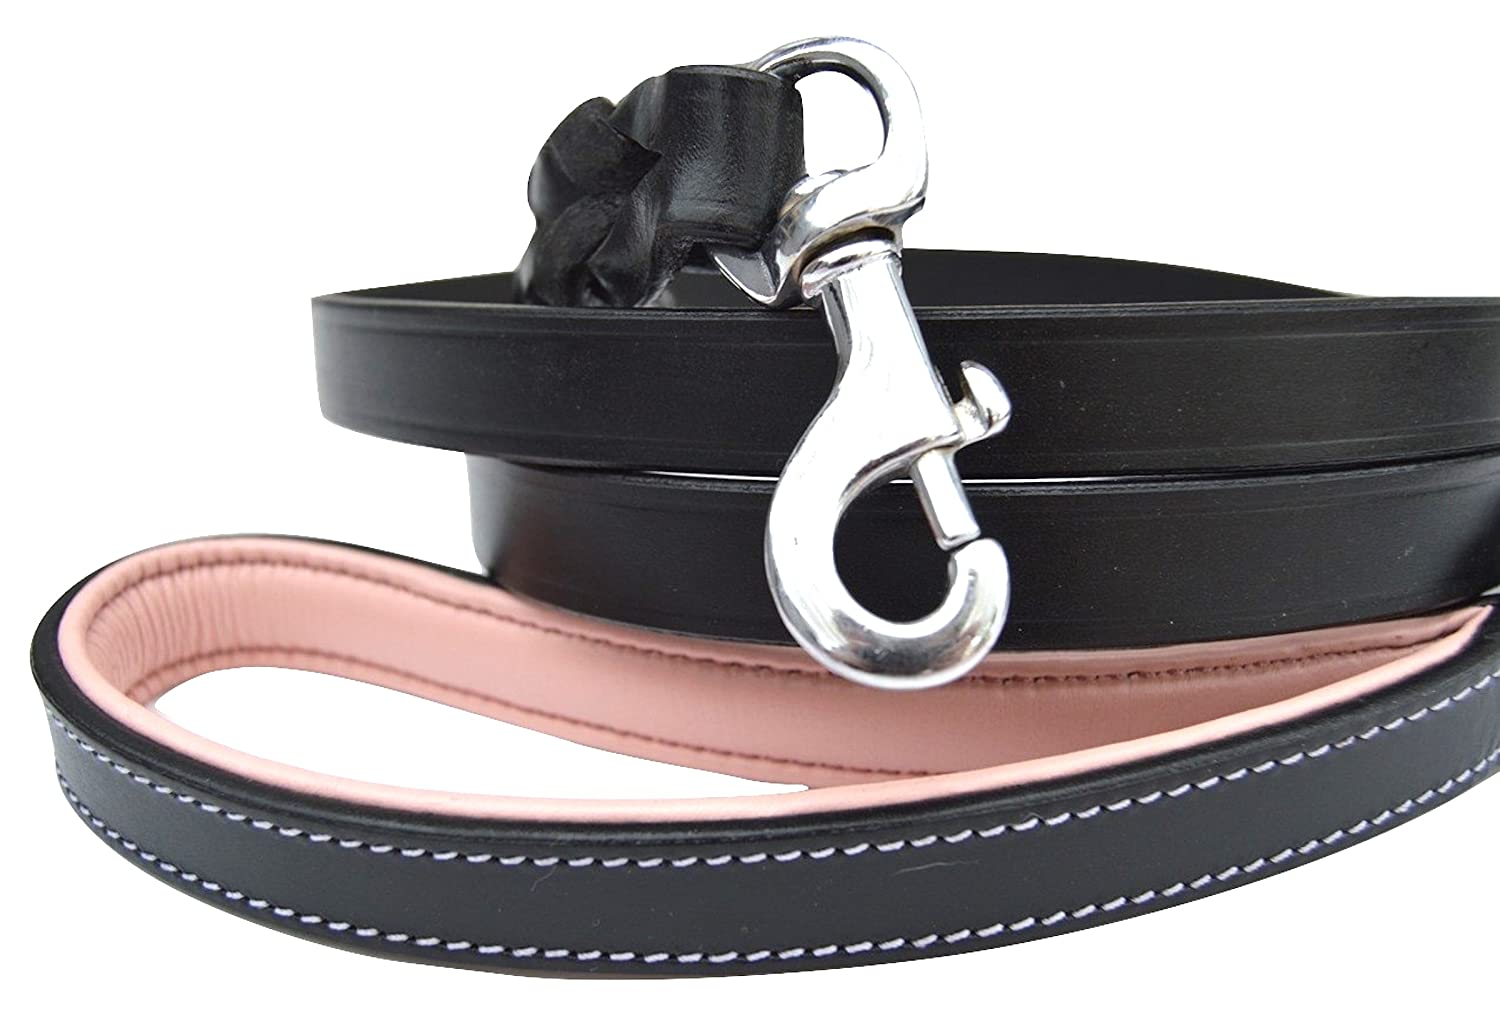 Black Light Pink Handle 6 Feet x 3 4 inch Black Light Pink Handle 6 Feet x 3 4 inch Soft Touch Collars Leather Braided Dog Leash with Padded Handle, Black and Light Pink 6 feet x 3 4 Inch, Great for Large Female Dogs